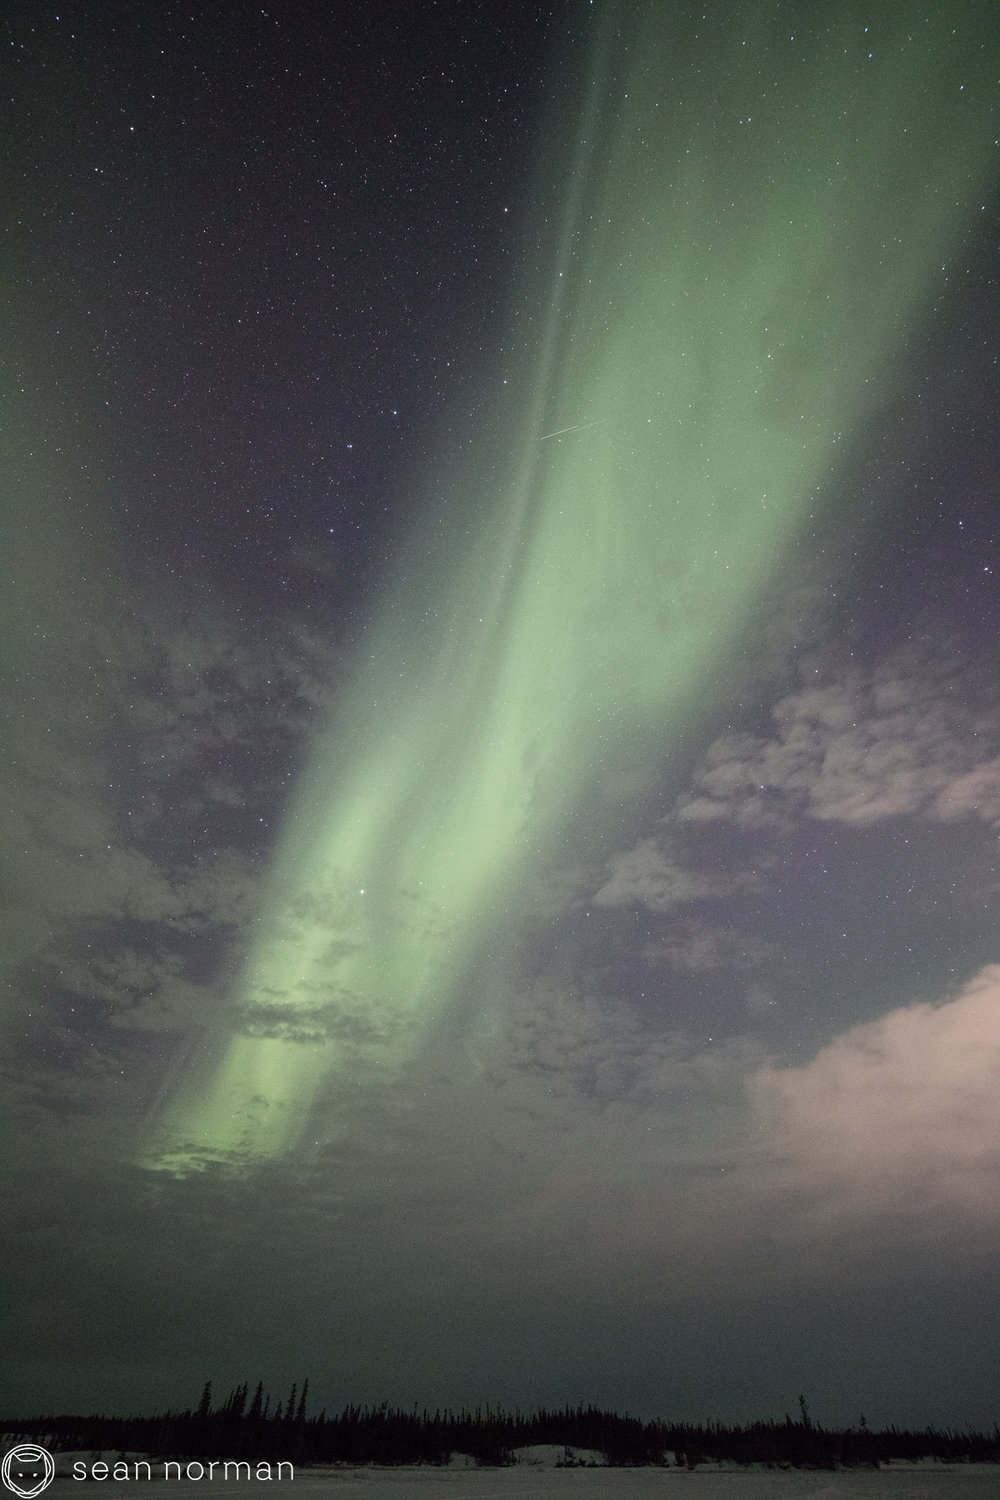 Yellowknife Canada Aurora Borealis View - Photo Blog - 3.jpg